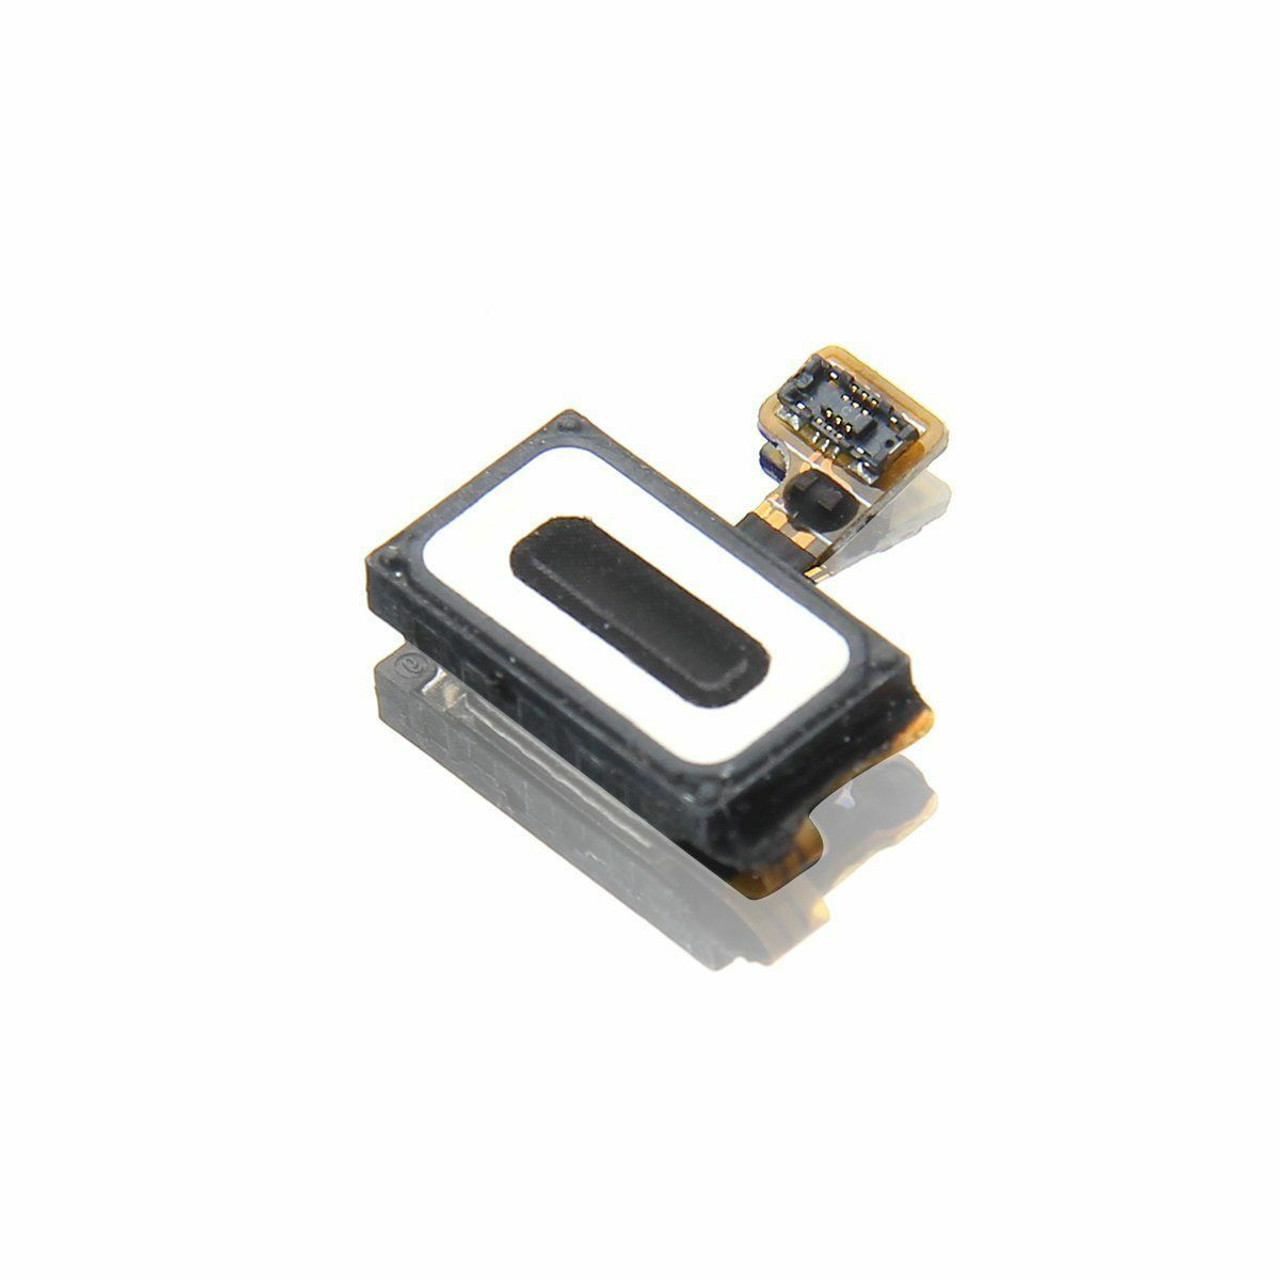 OEM Ear Speaker Earpiece Flex Cable For Samsung Galaxy S7 G930A G930V G930P G930